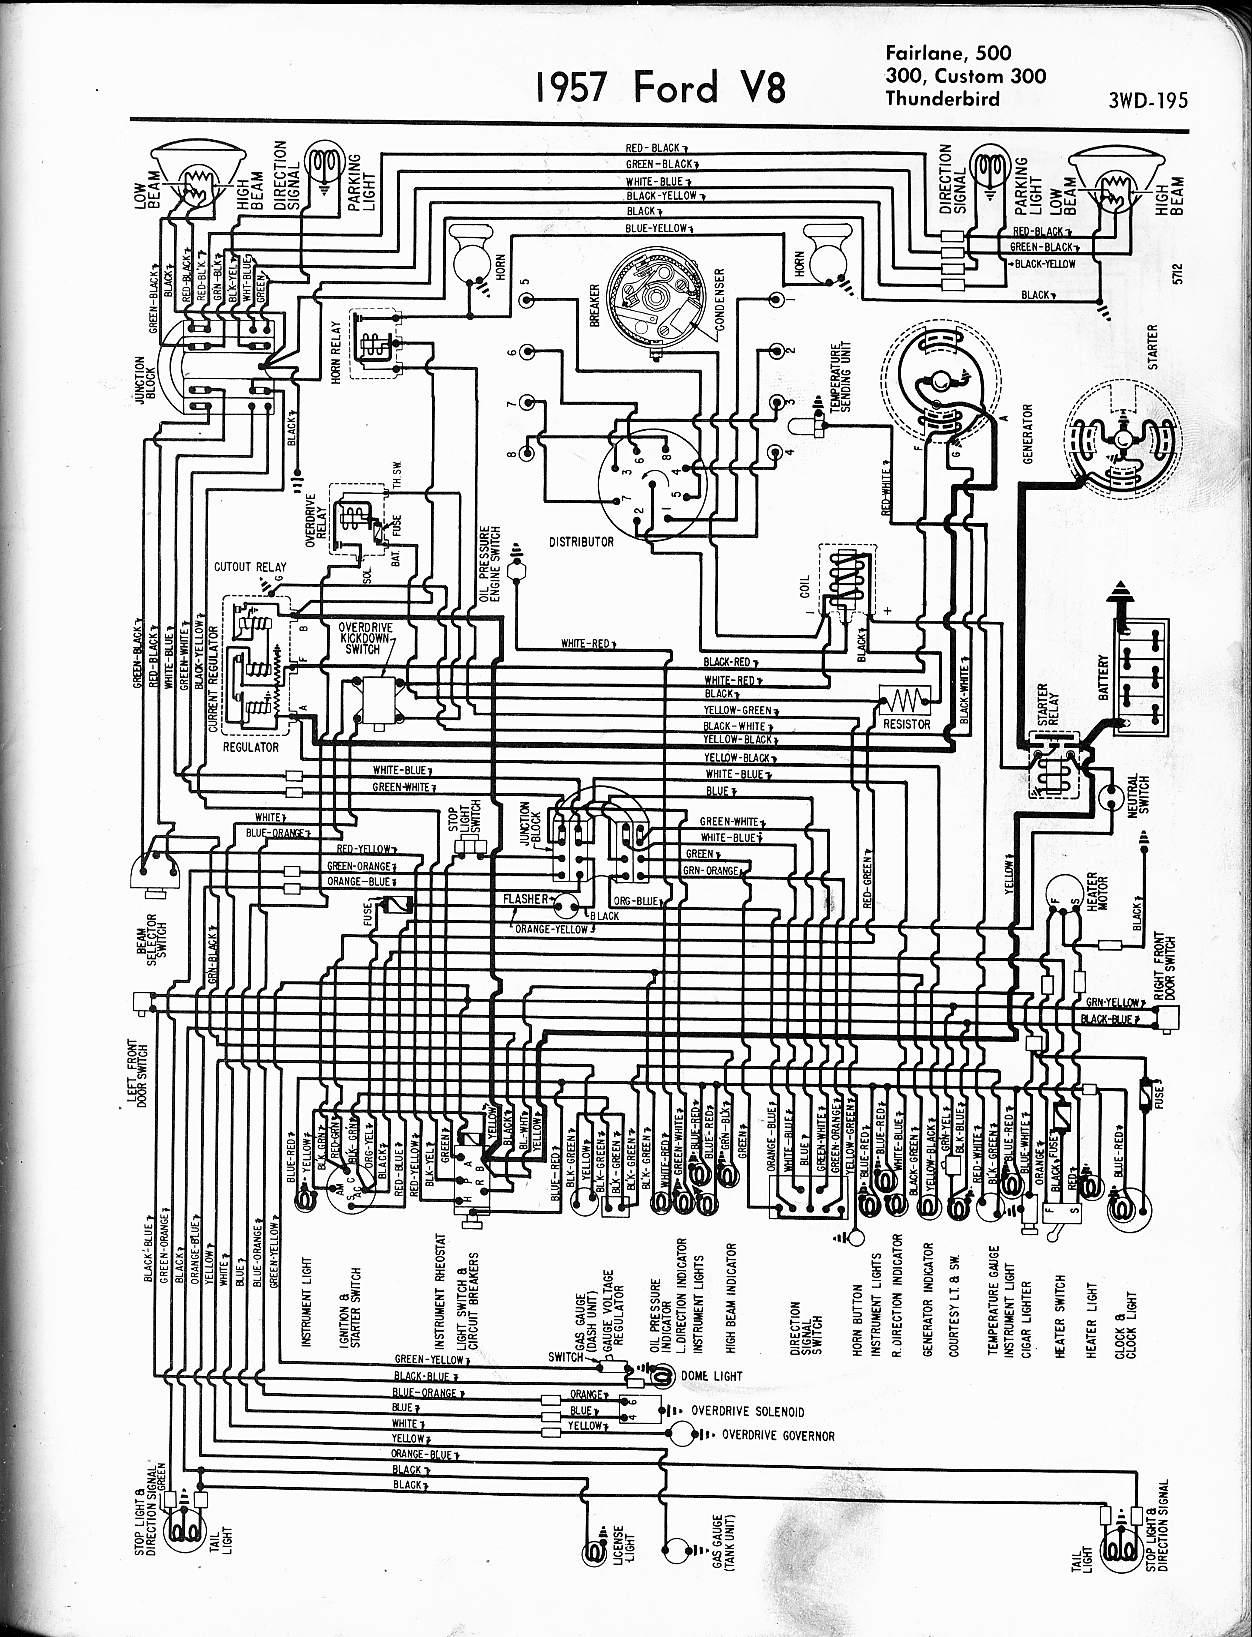 MWire5765 195 runtz voltage reducer i change my 55 t birt to a 12 volt system 57 Chevy Wiring Diagram at gsmx.co